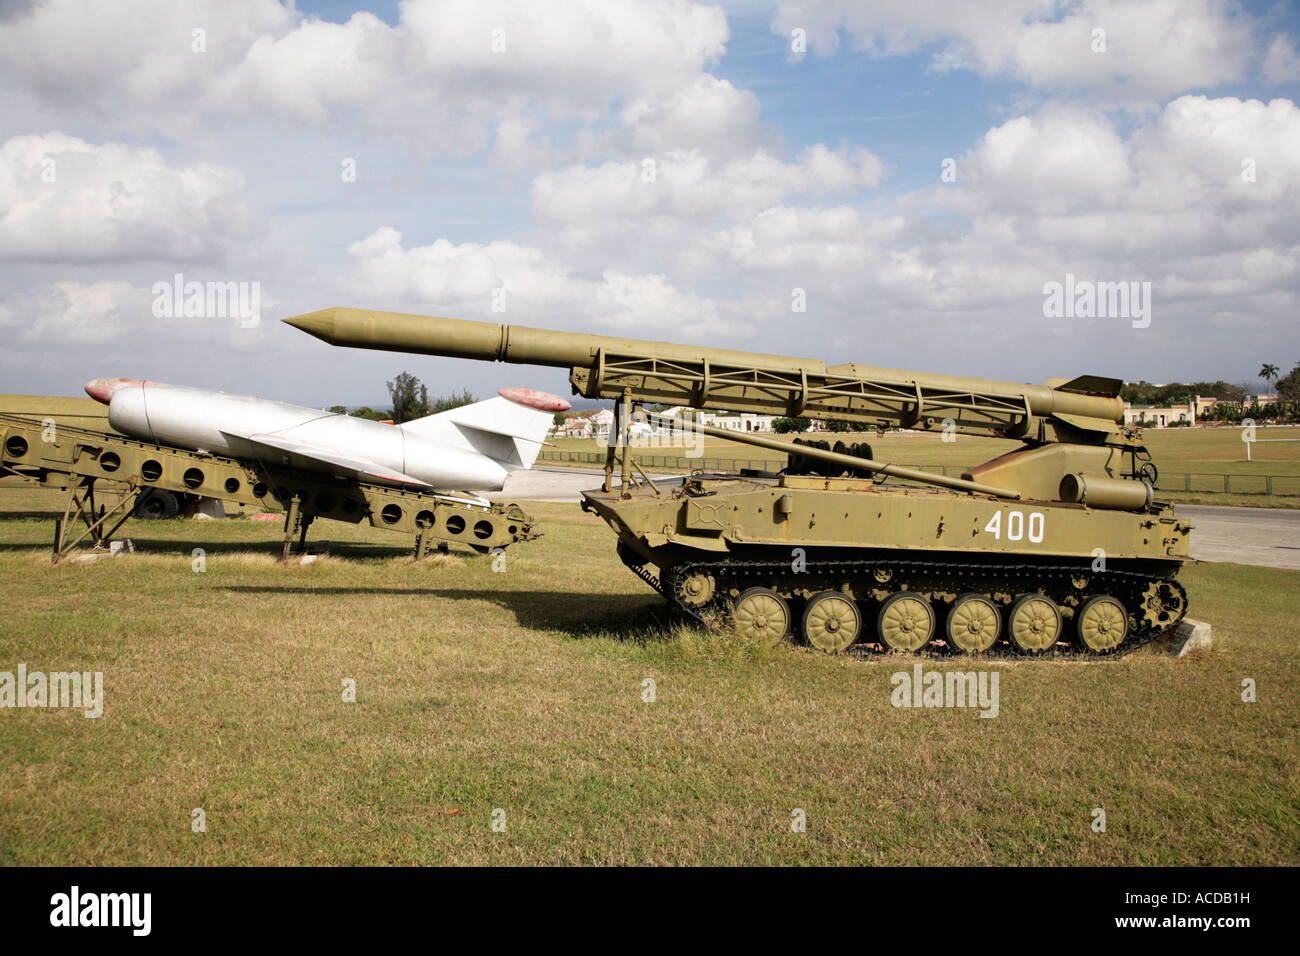 Stock Photo of Soviet Missiles in Cuba. - Stock Image